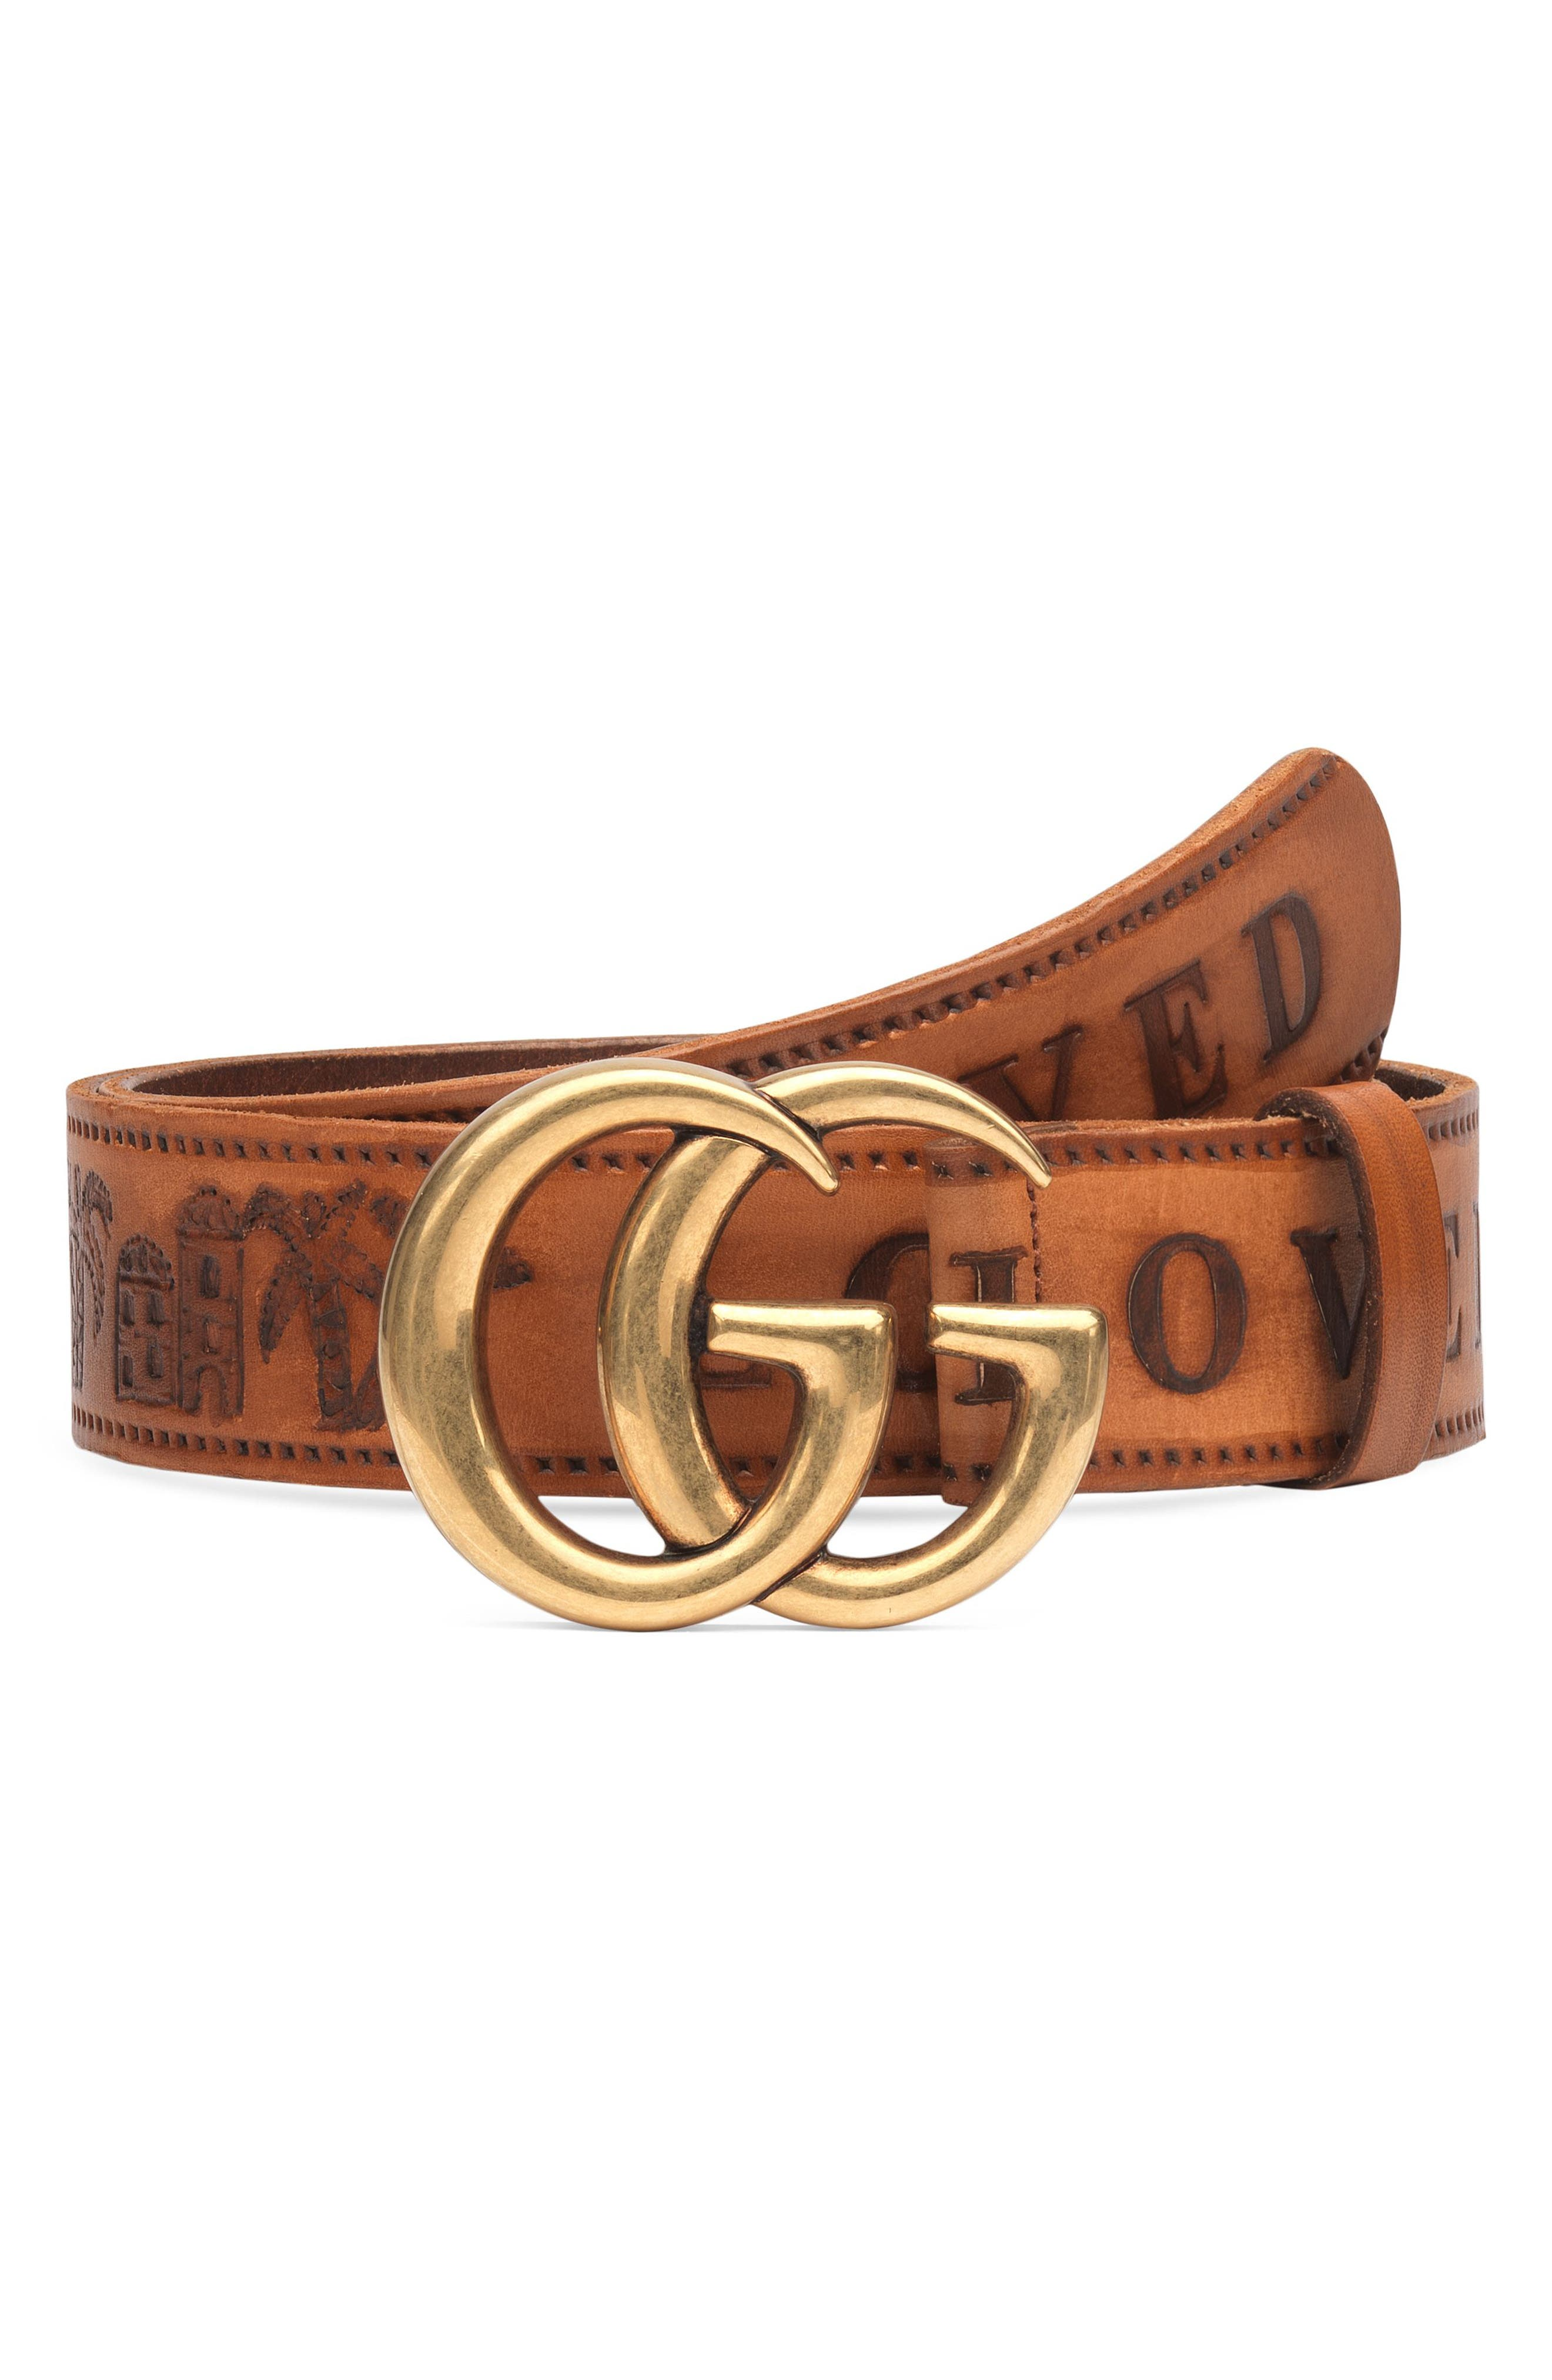 GG Logo Loved Calfskin Leather Belt,                         Main,                         color, Cuoio/ Cuoio